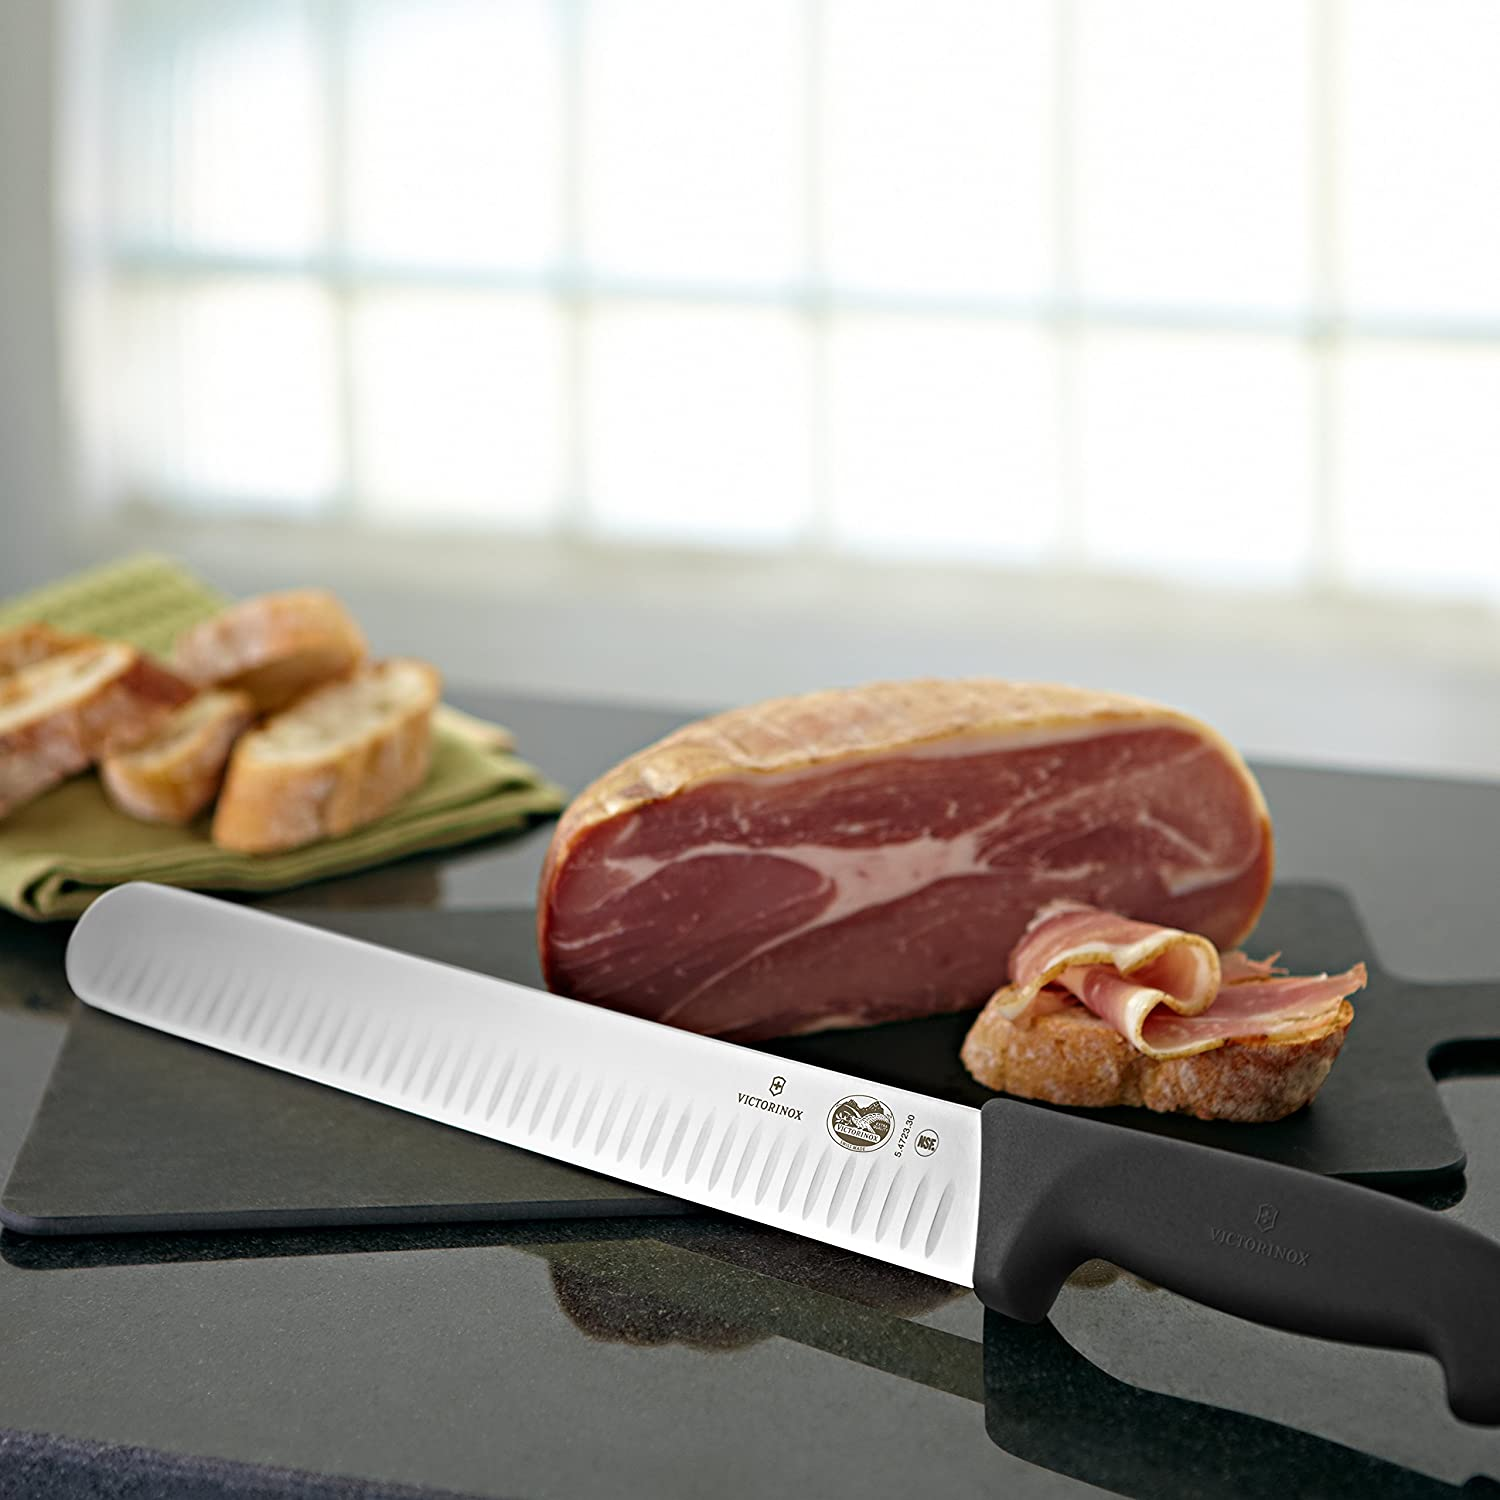 12-Inch Granton Blade Victorinox Swiss Army - 47645 Cutlery Fibrox Pro Slicing Knife Besides Roasted Meat